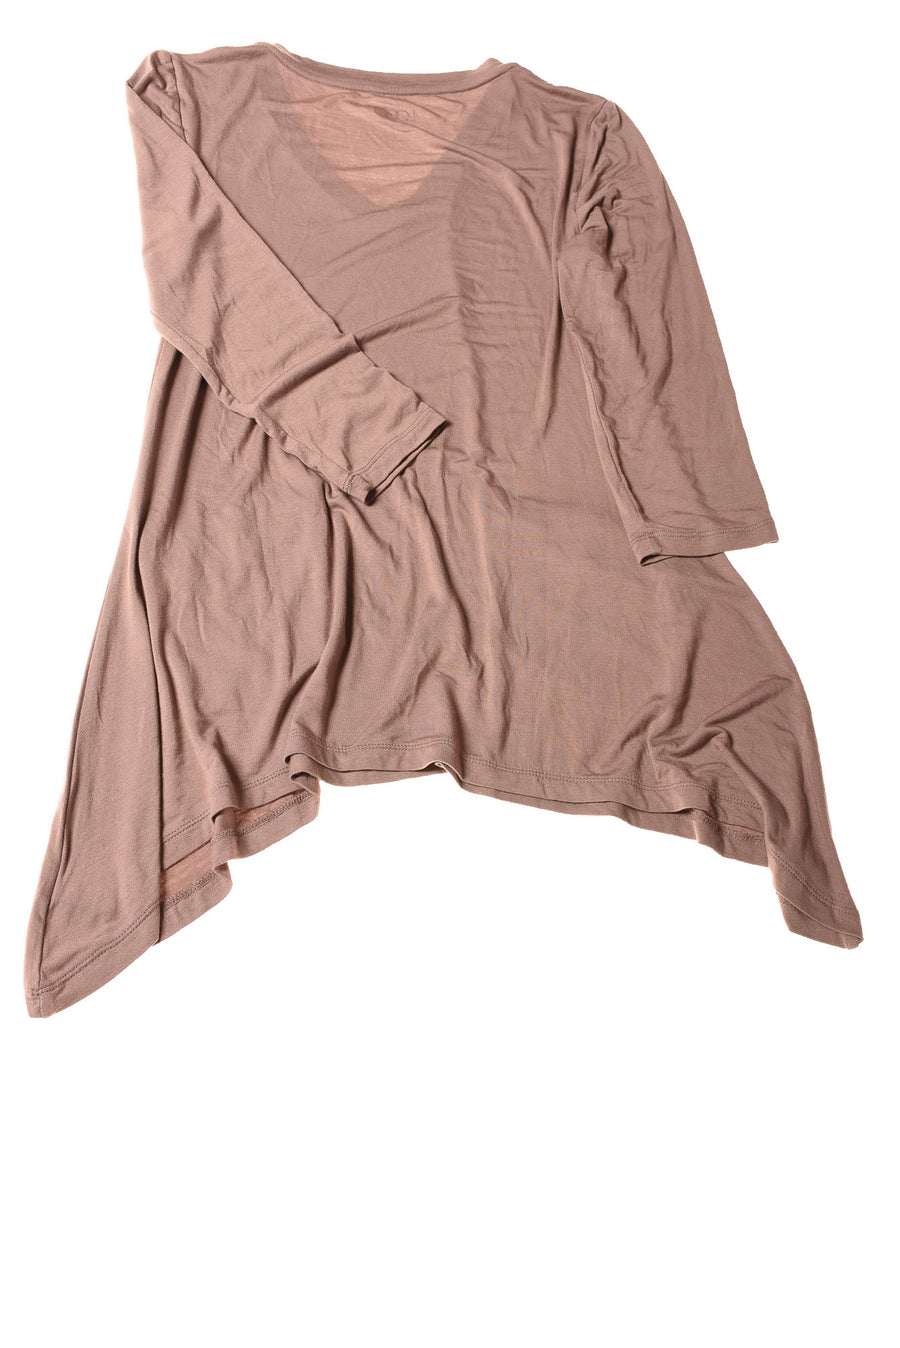 USED Logo Women's Top XX-Small Brown